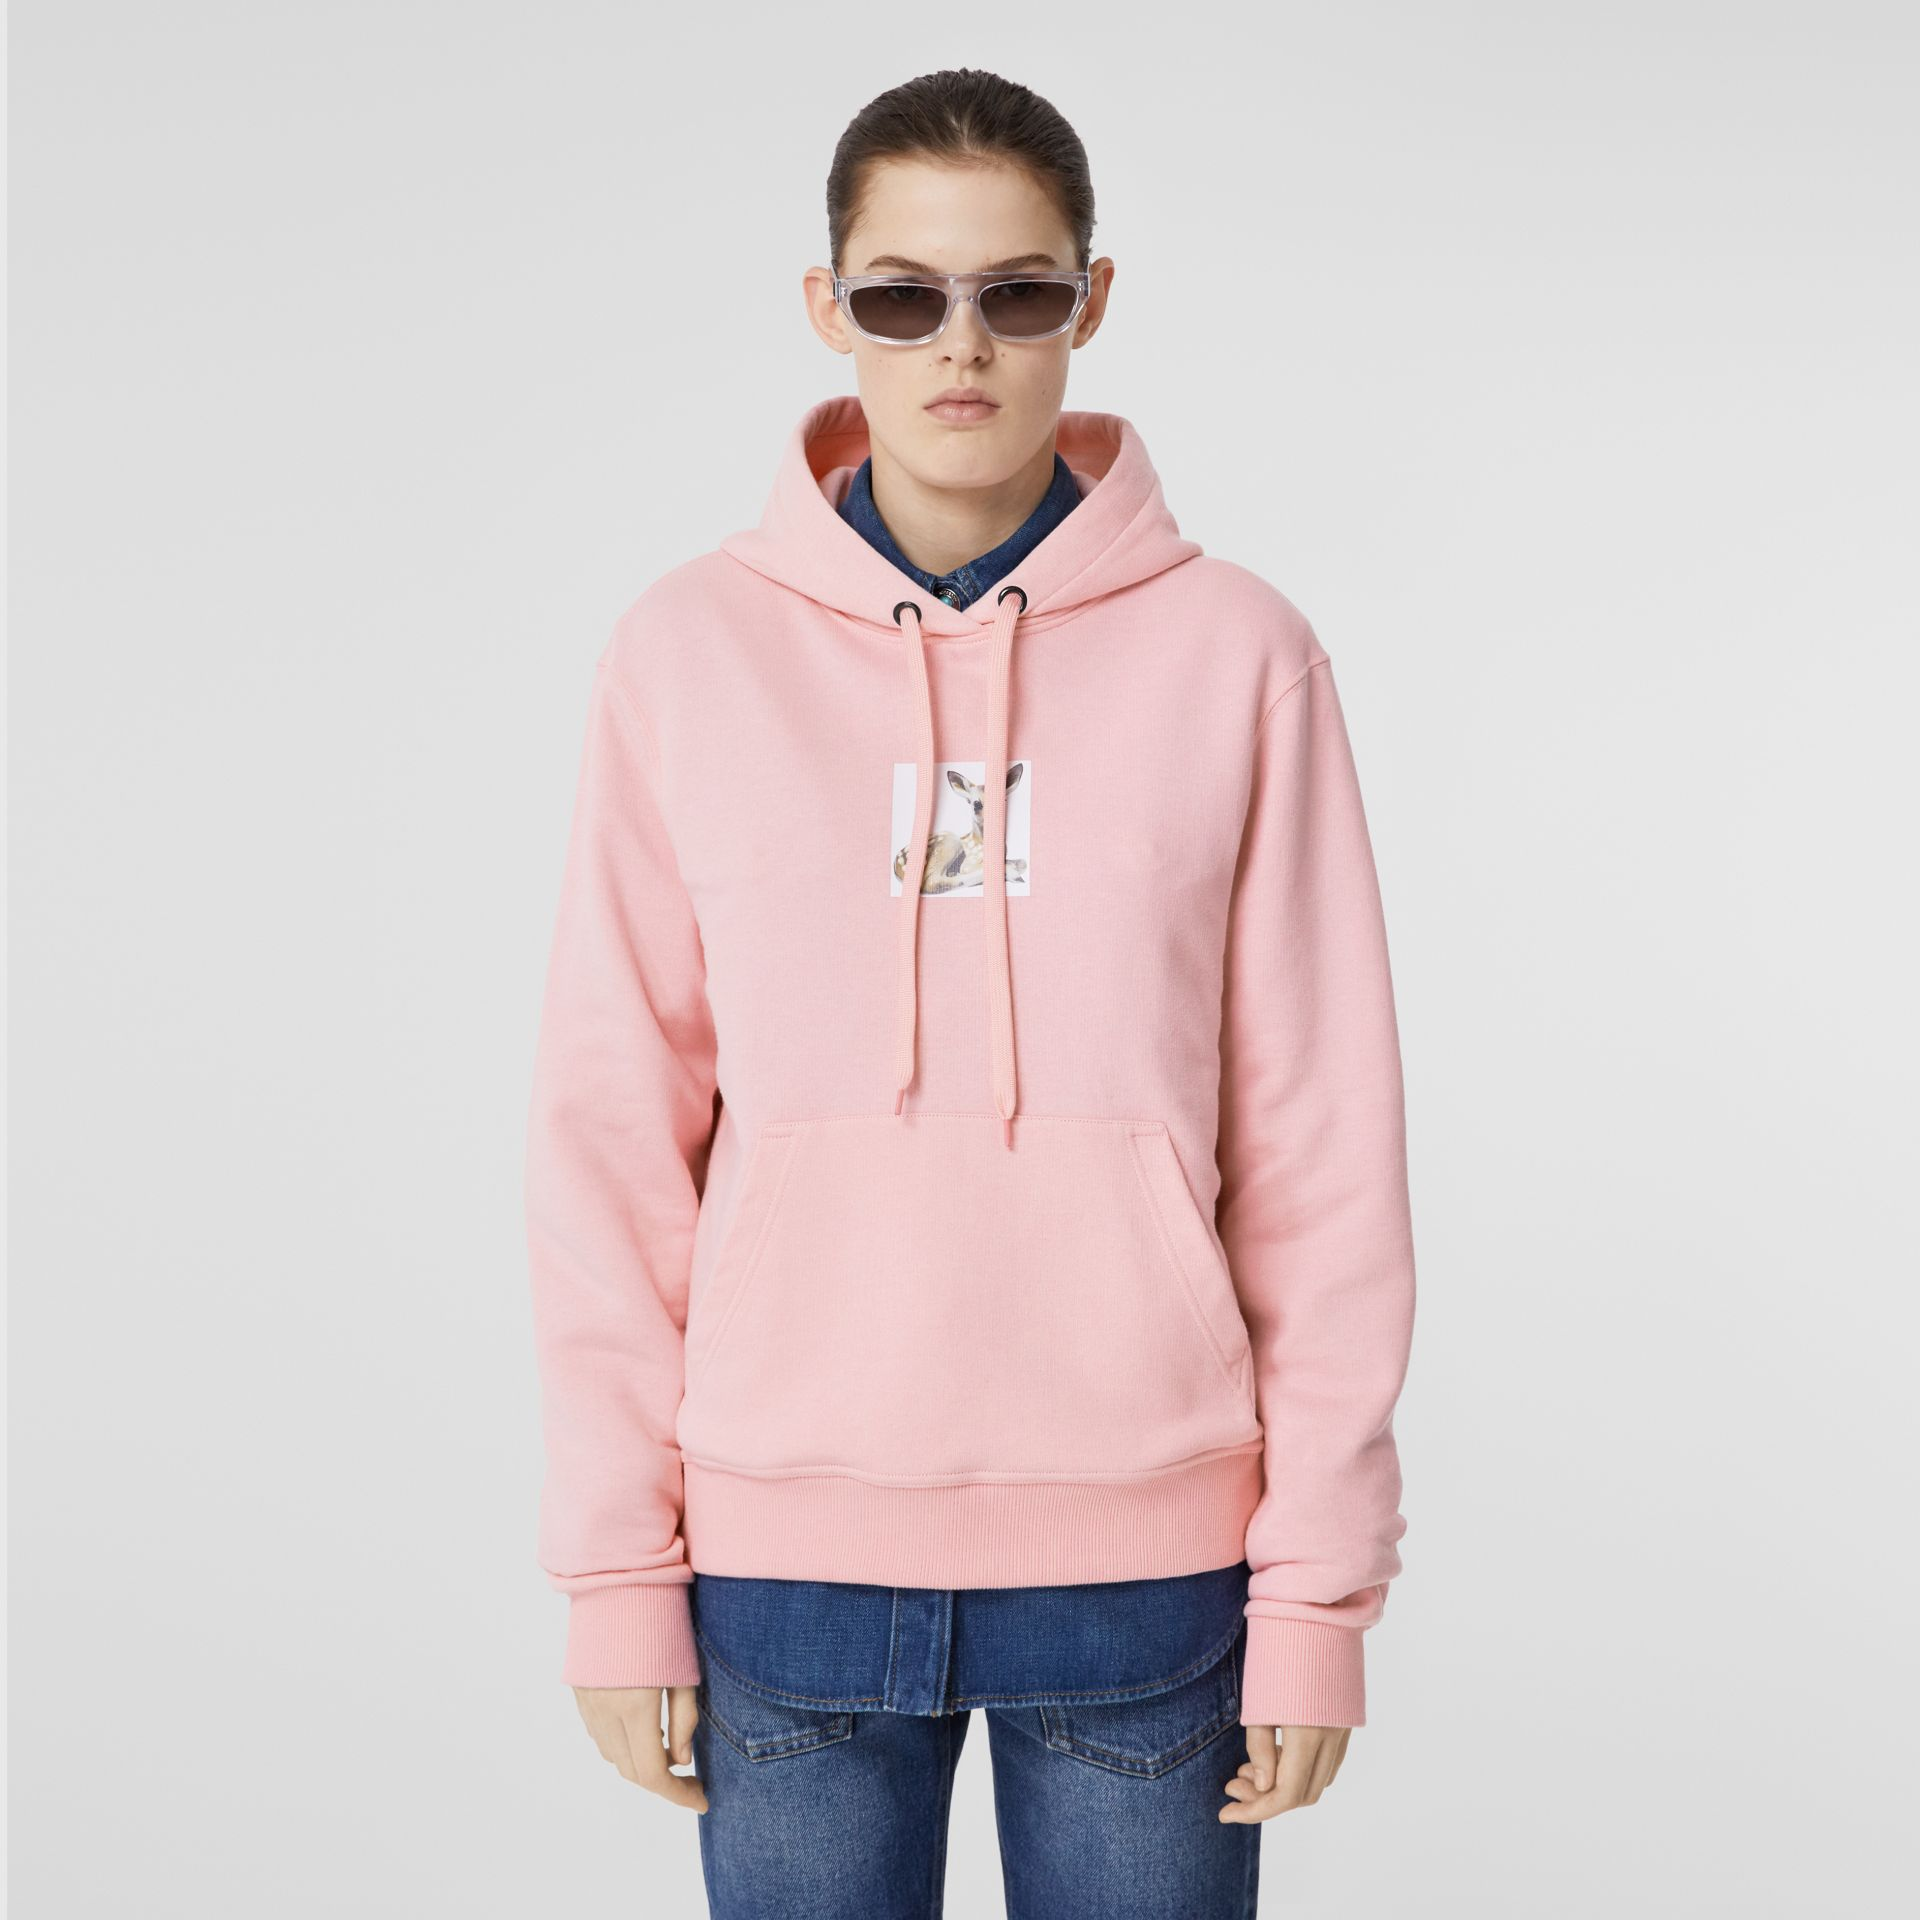 Deer Print Cotton Hoodie in Candy Pink - Women | Burberry Hong Kong S.A.R - gallery image 4